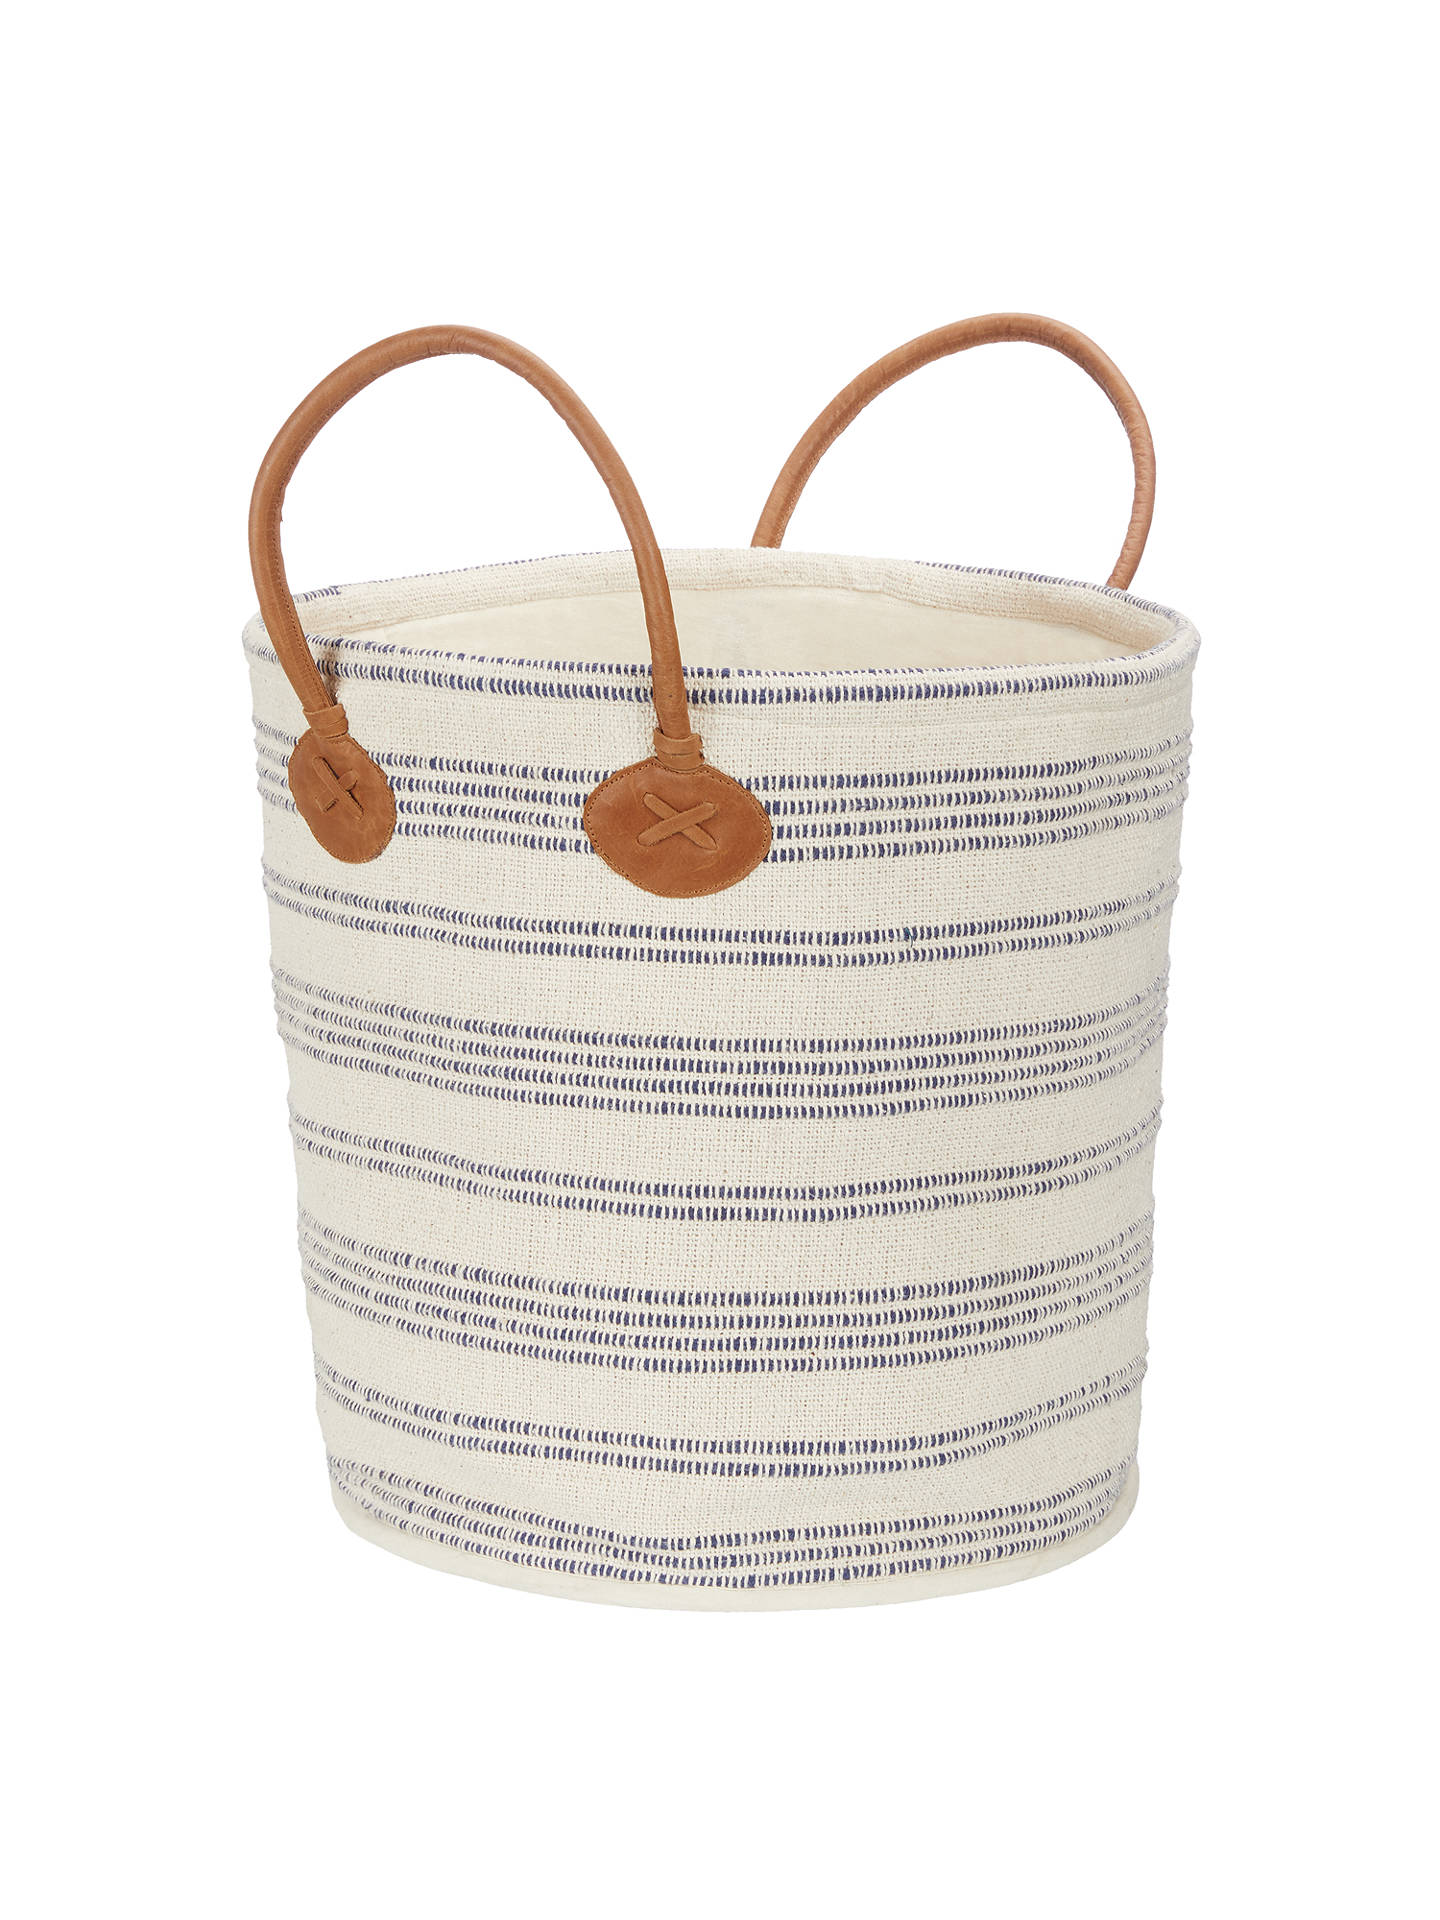 BuyJohn Lewis & Partners Coastal Cotton Storage Tote Online at johnlewis.com